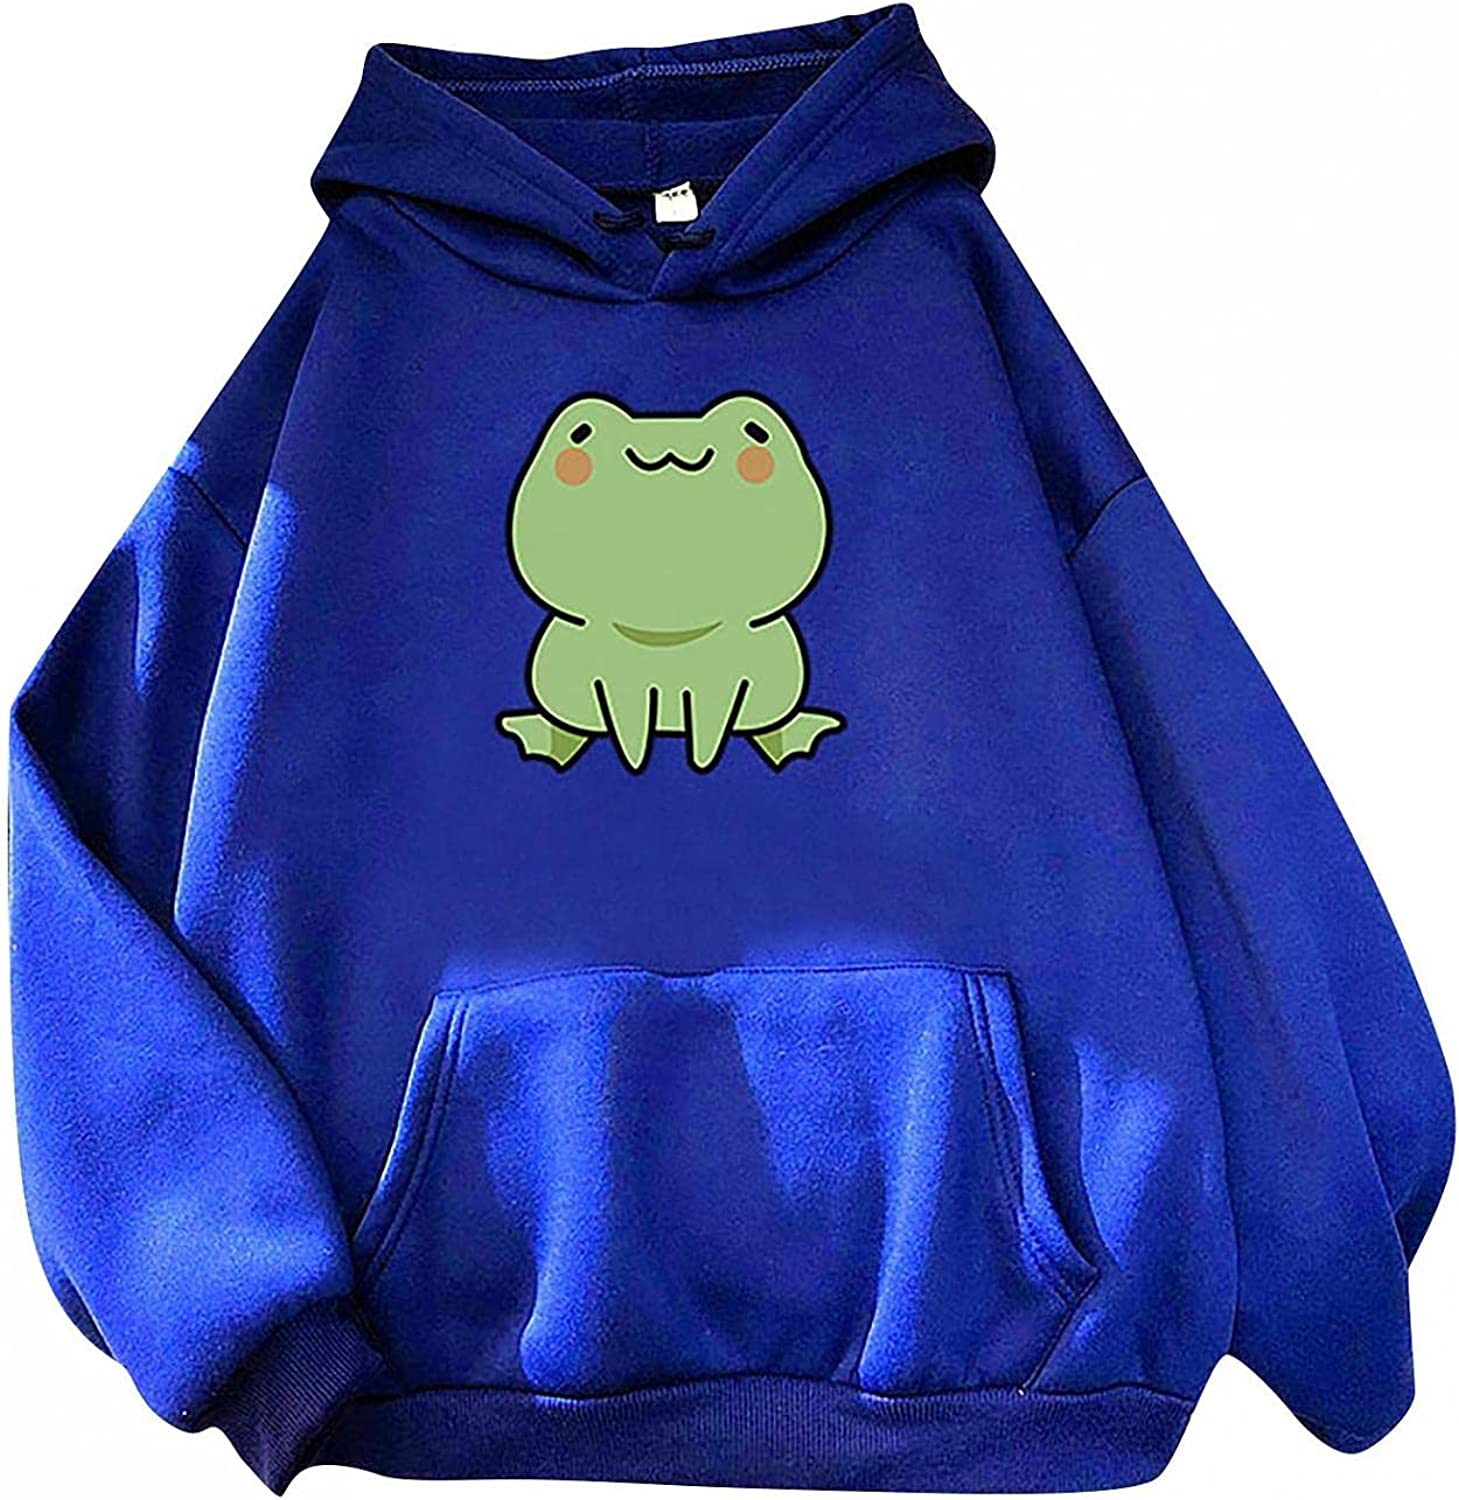 Haheyrte Hoodies for Womens Long Sleeve Cute Animal Frog Printed Hooded Blouse Casual Loose Sweatshirts Pullover Tops Shirts